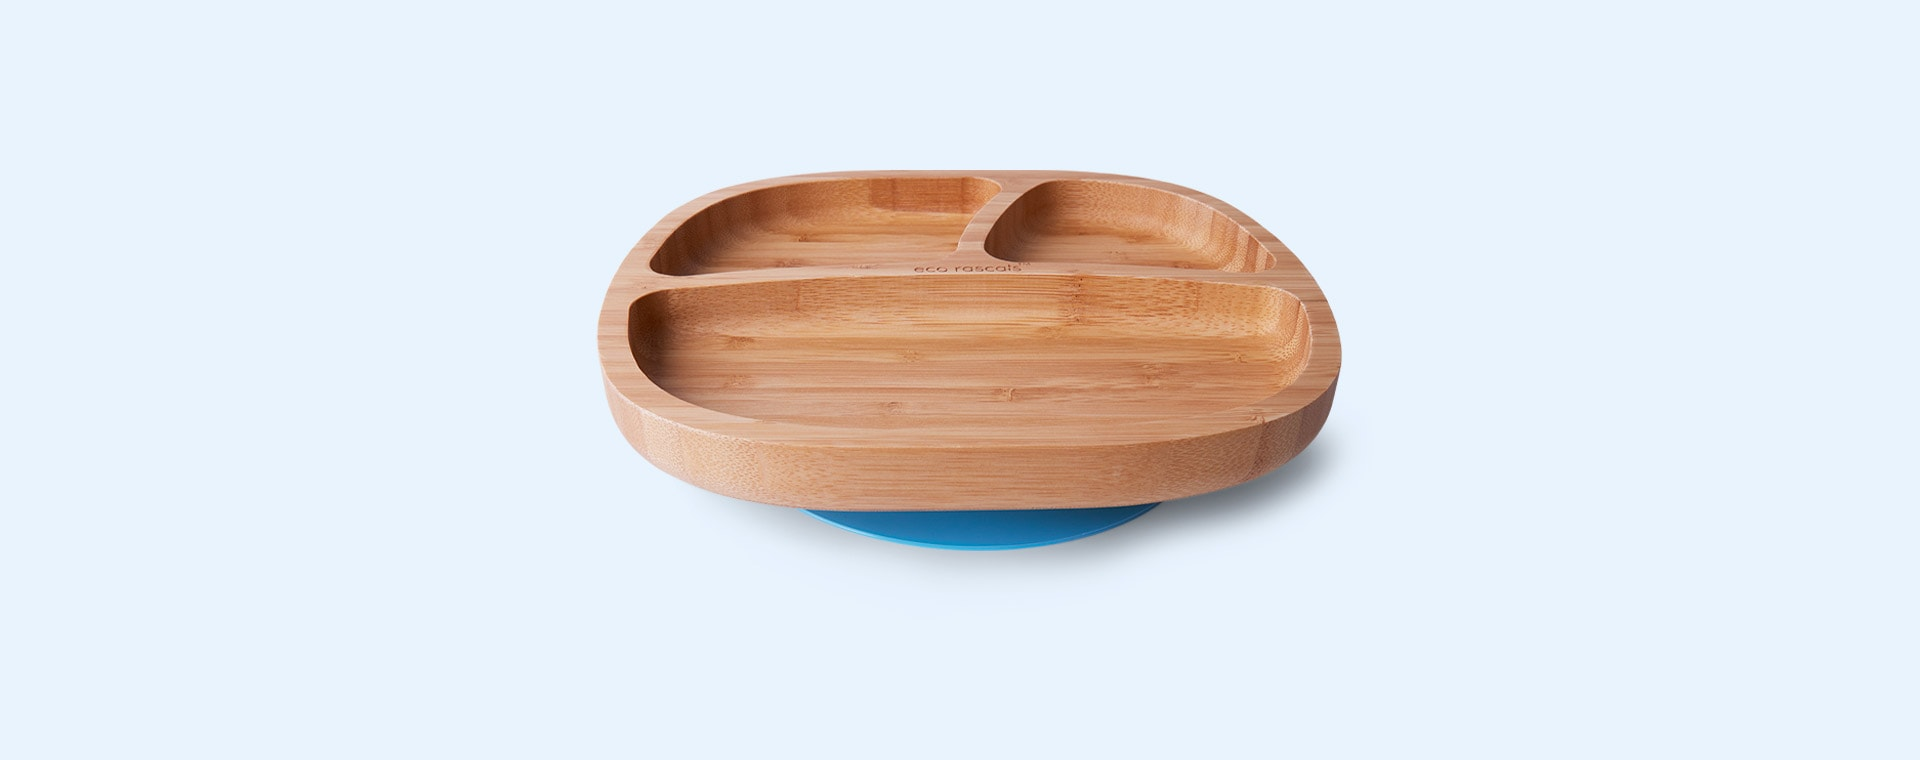 Blue eco rascals Bamboo Suction Toddler Plate